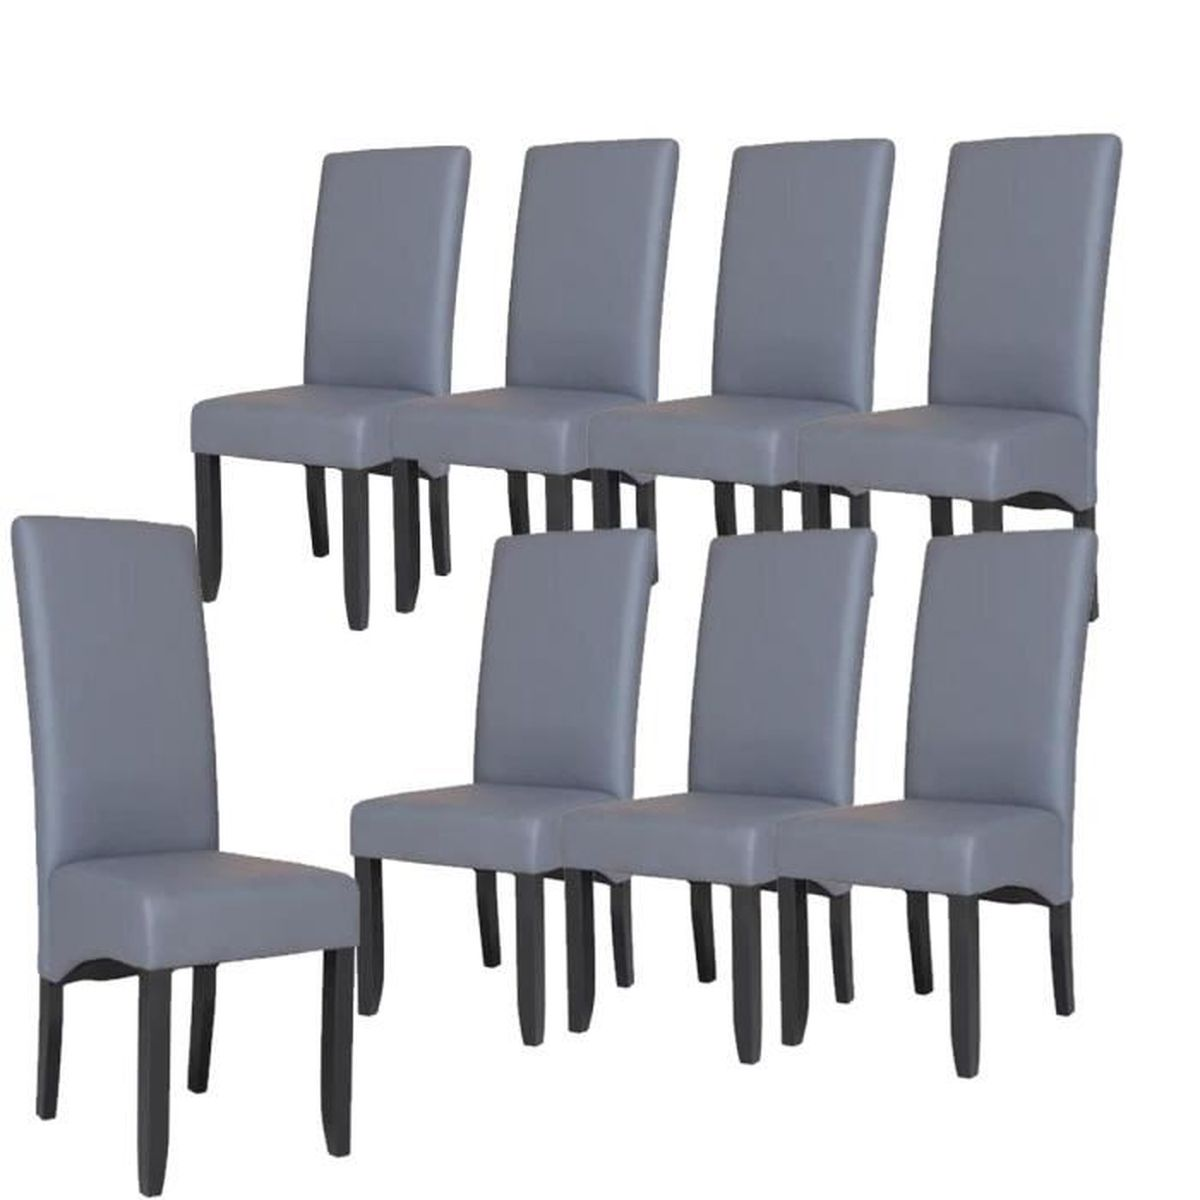 cuba lot de 8 chaises de salle manger en simili gris. Black Bedroom Furniture Sets. Home Design Ideas